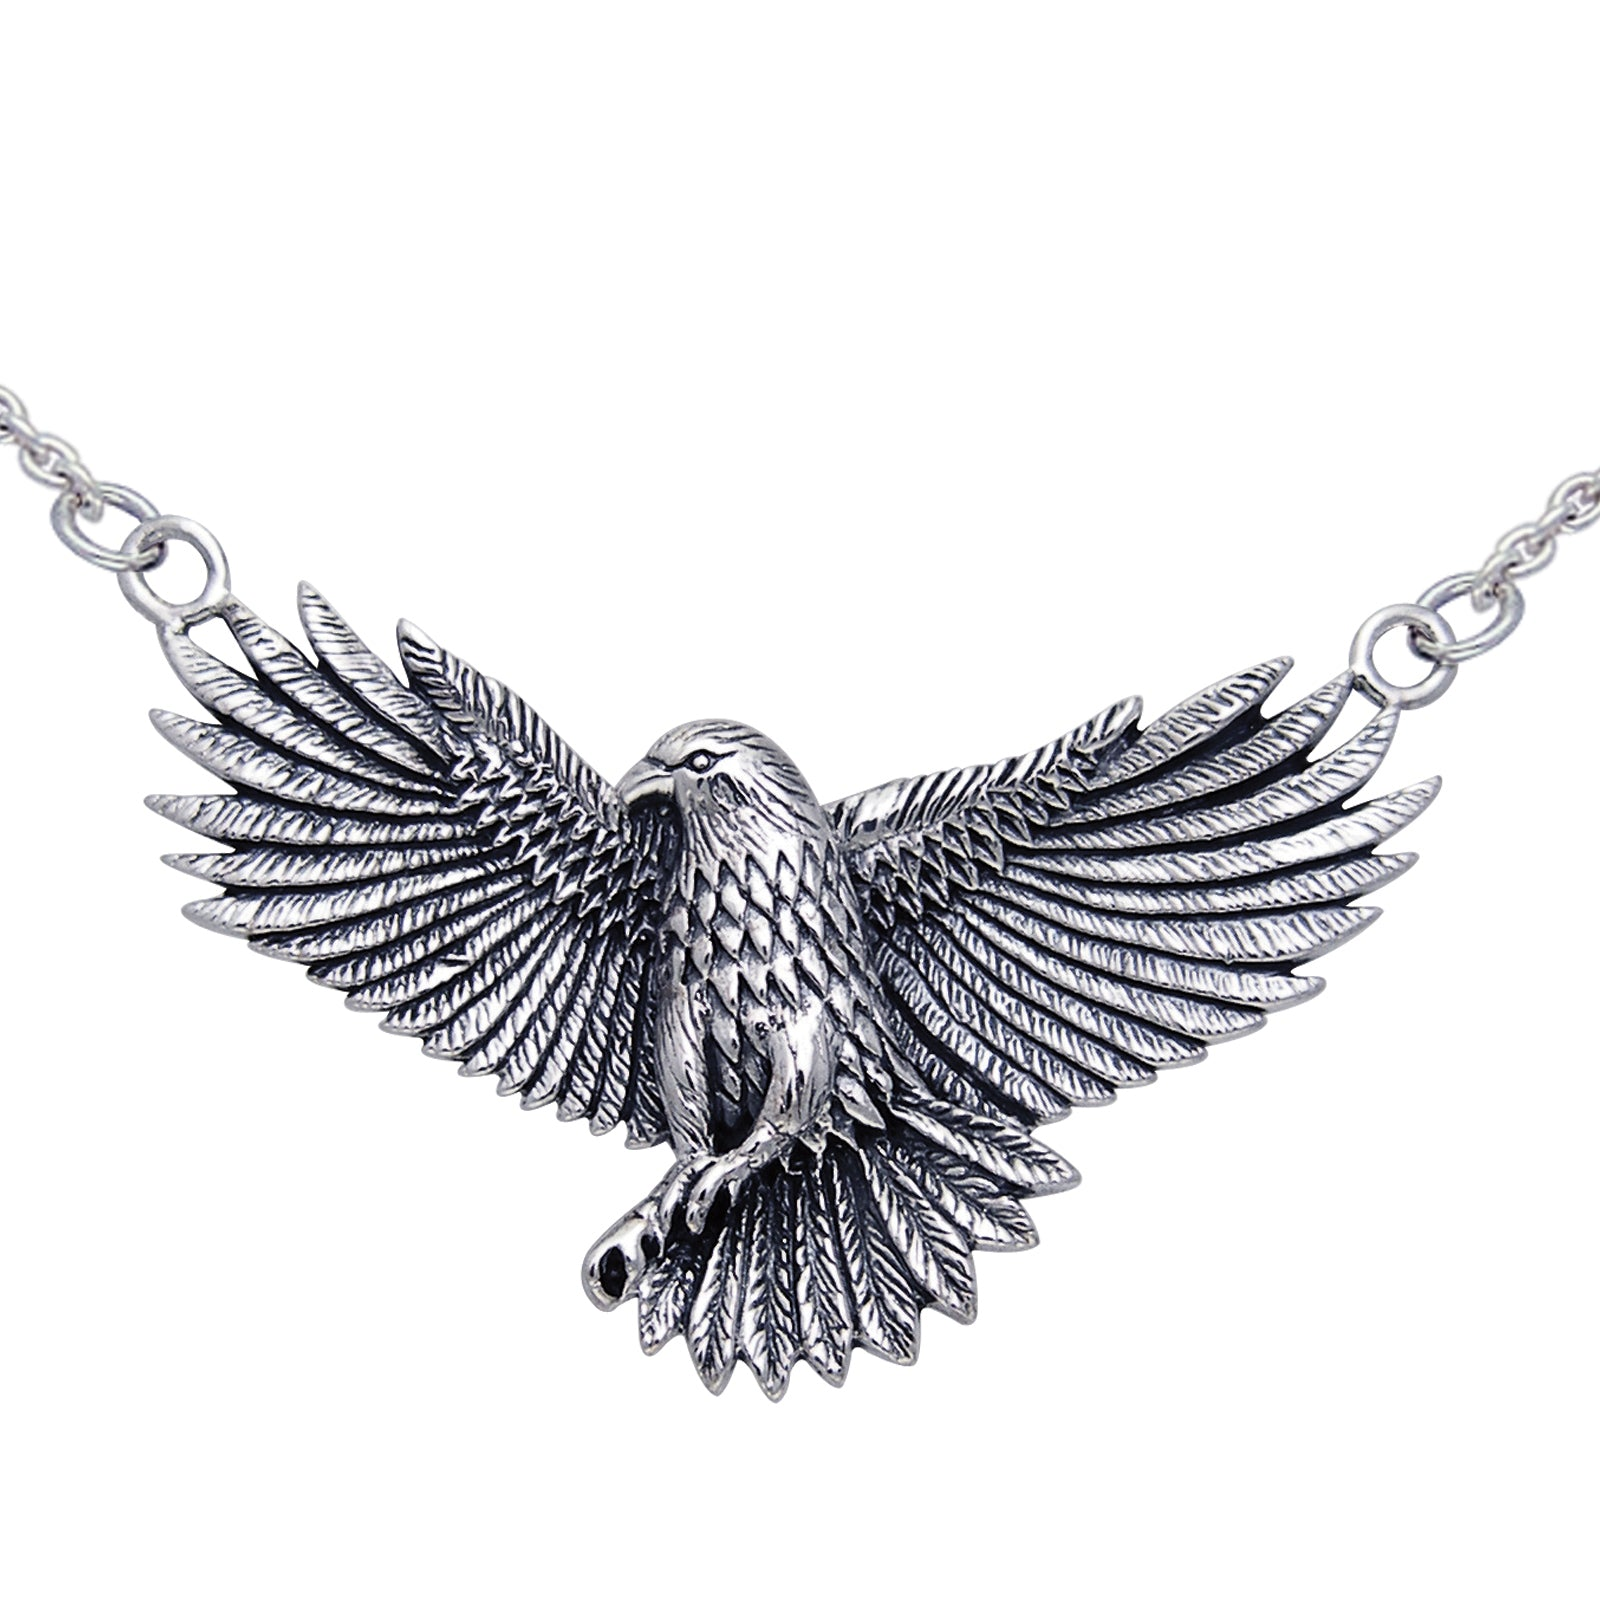 "Detailed Sterling Silver Native American Indian Large Eagle Necklace 18"" - Silver Insanity"